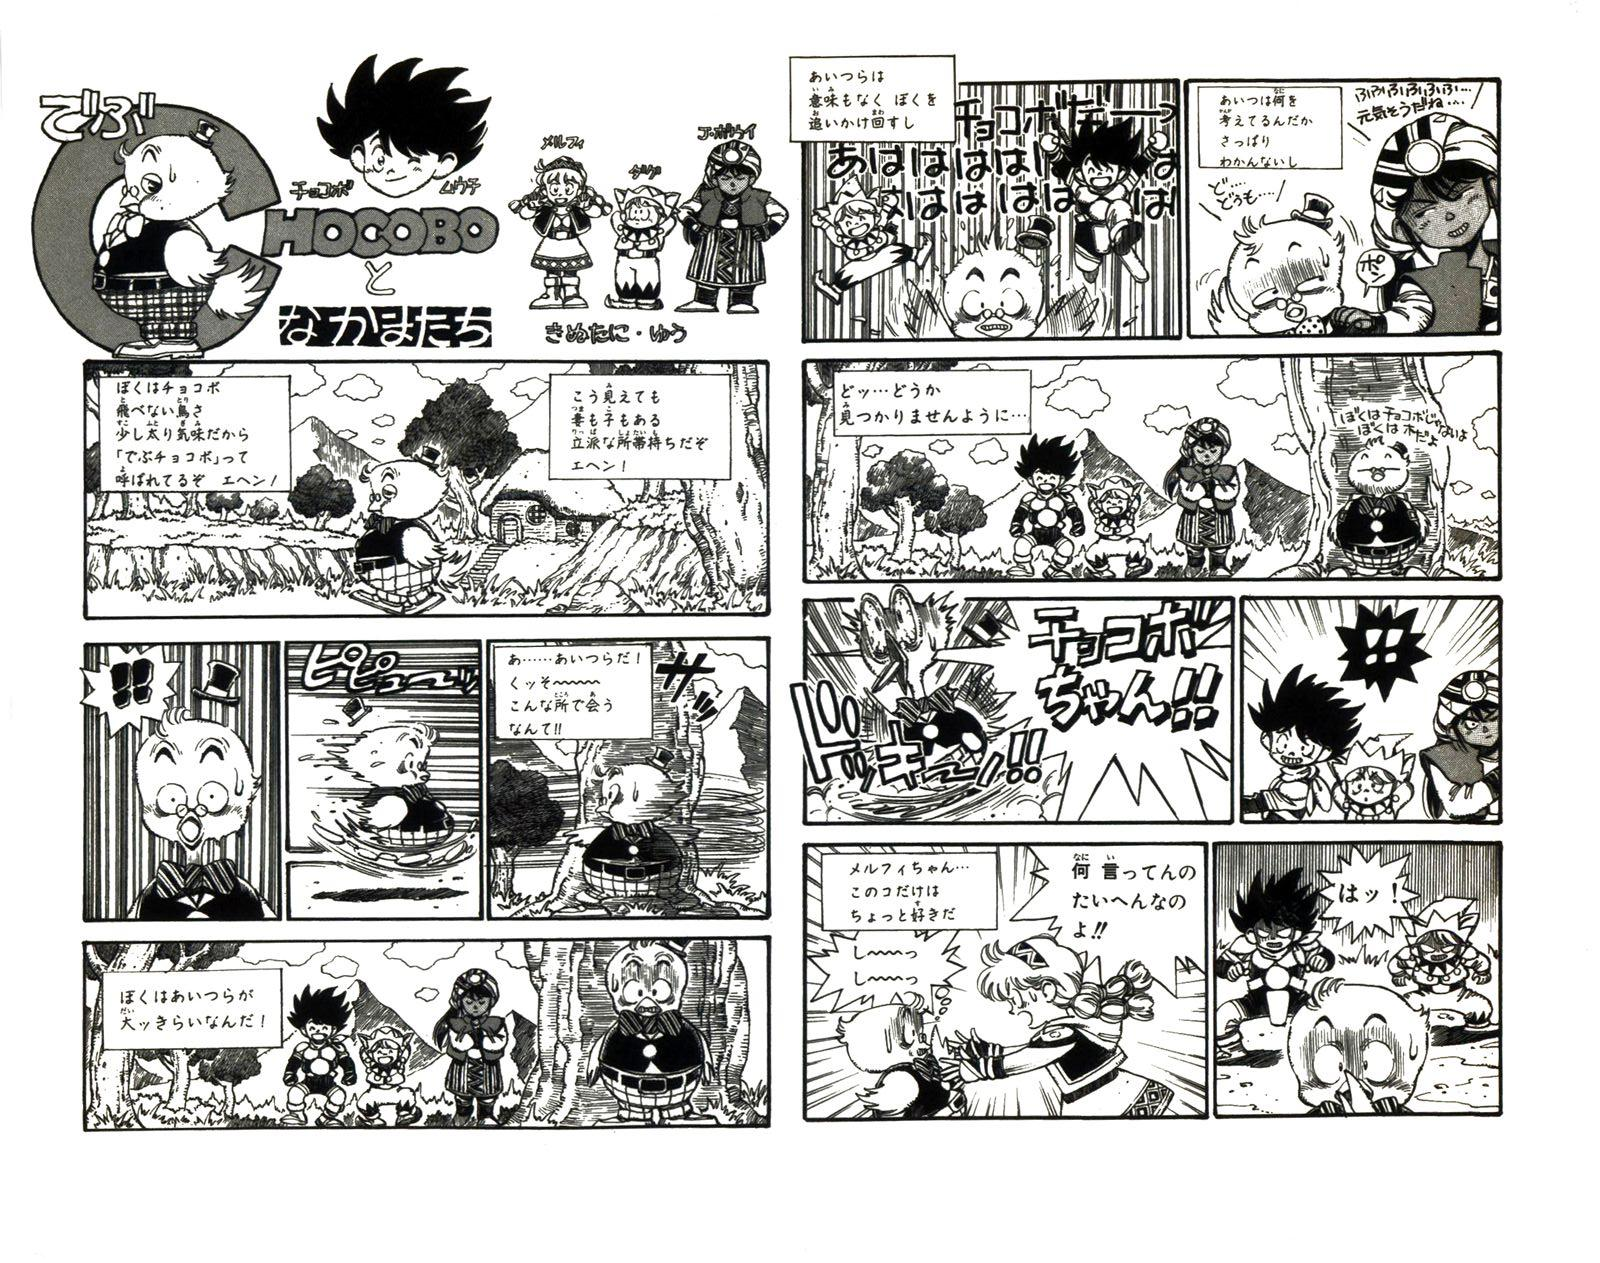 File Ffiii Manga Chocobo Comic 1 Jpg